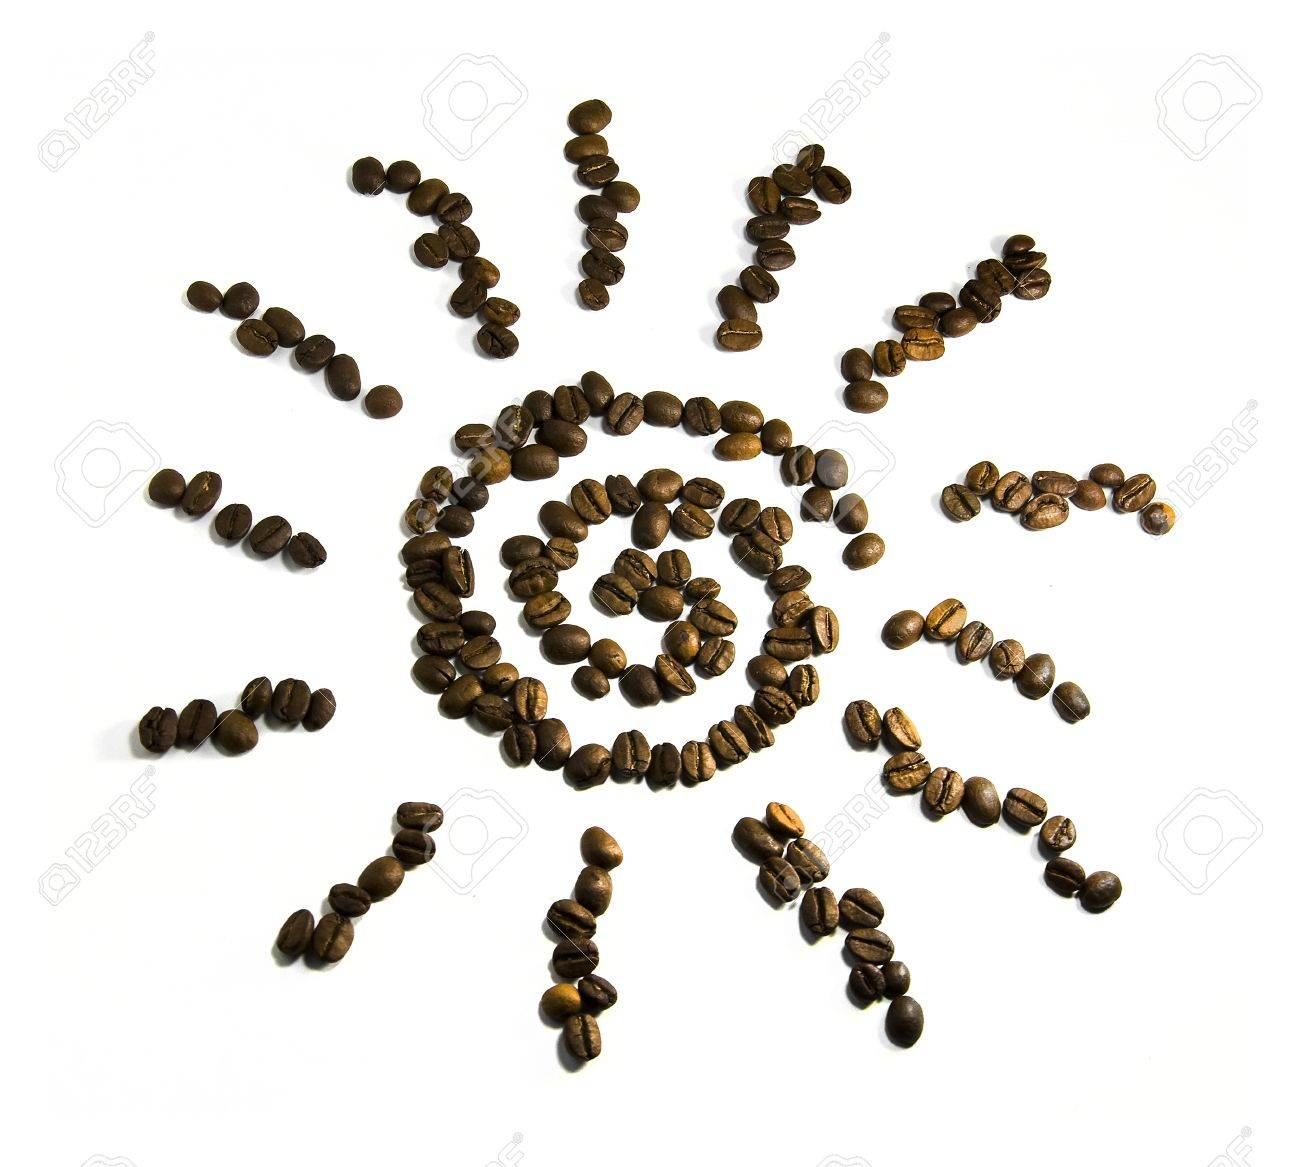 sun symbol from coffee beans on a white background - 10016151